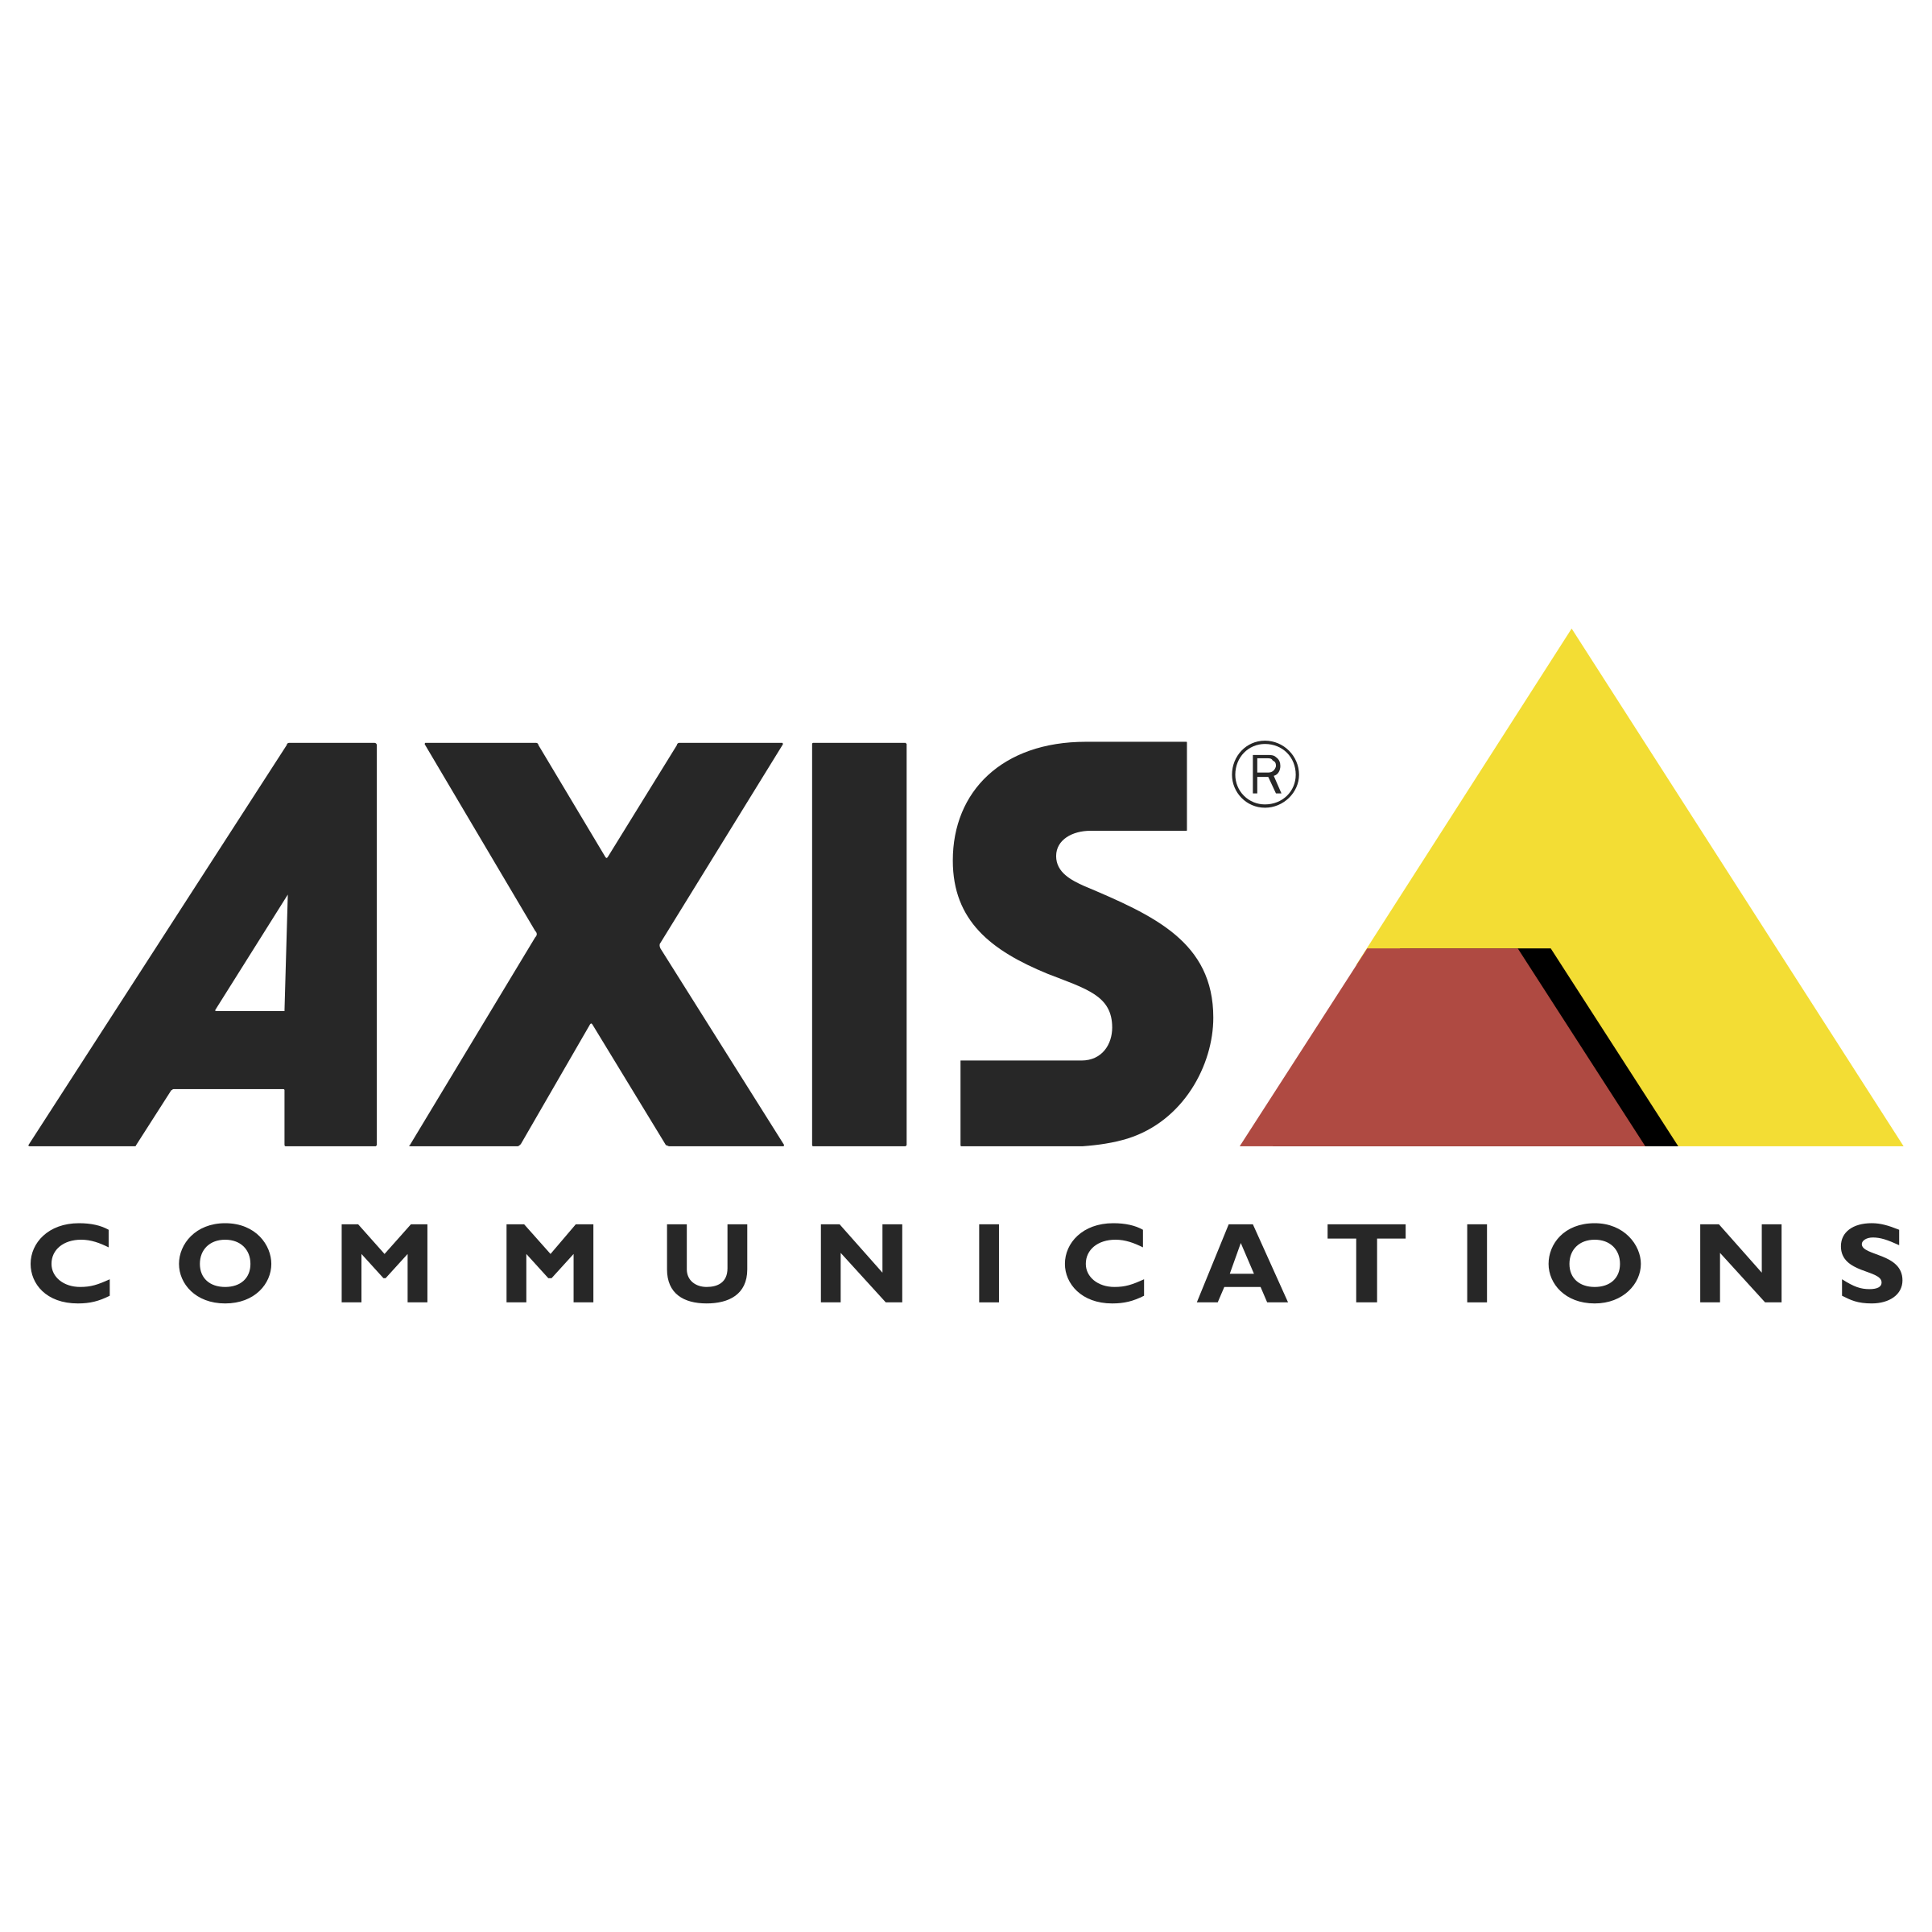 axis-communications-01-logo-png-transparent.png